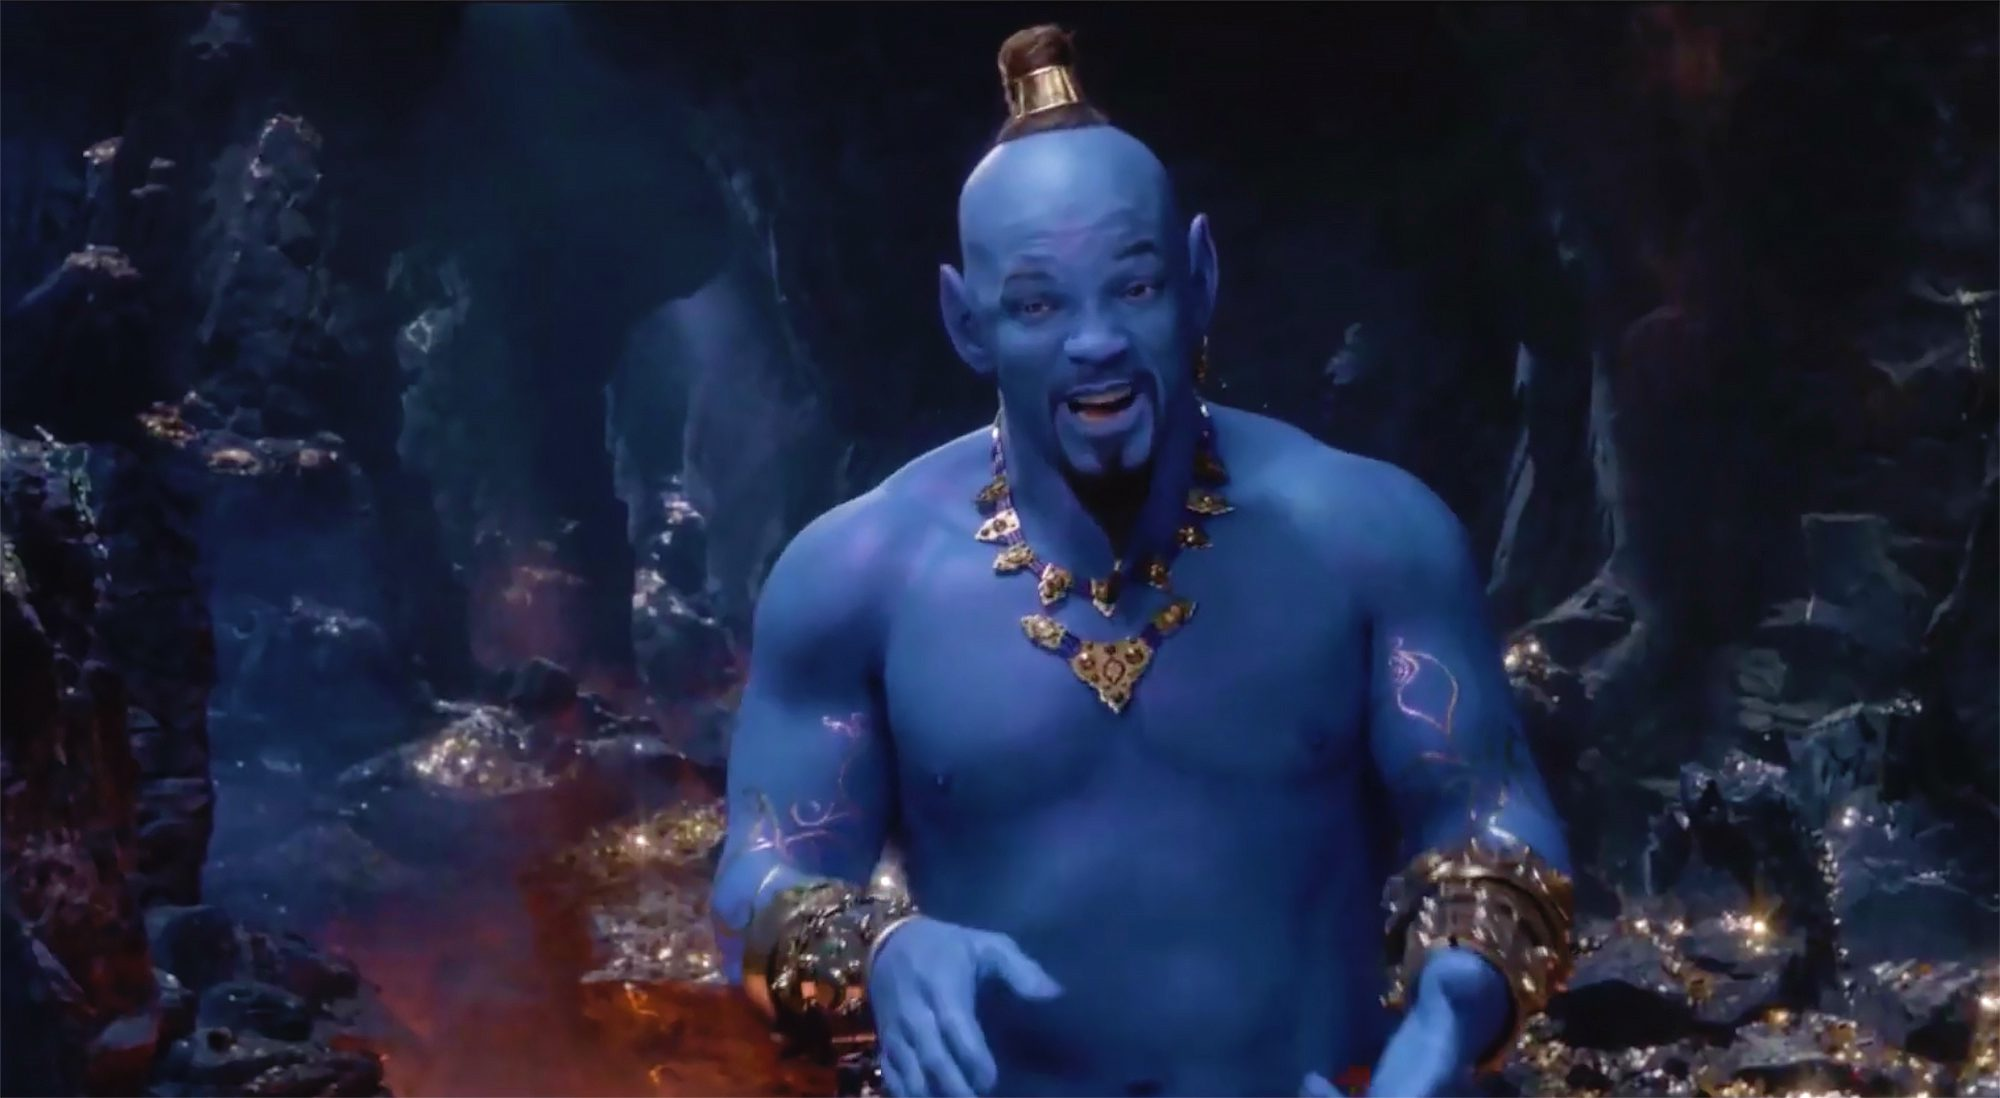 See-Will-Smith-as-the-Blue-Genie-in-New-Aladdin-Trailer